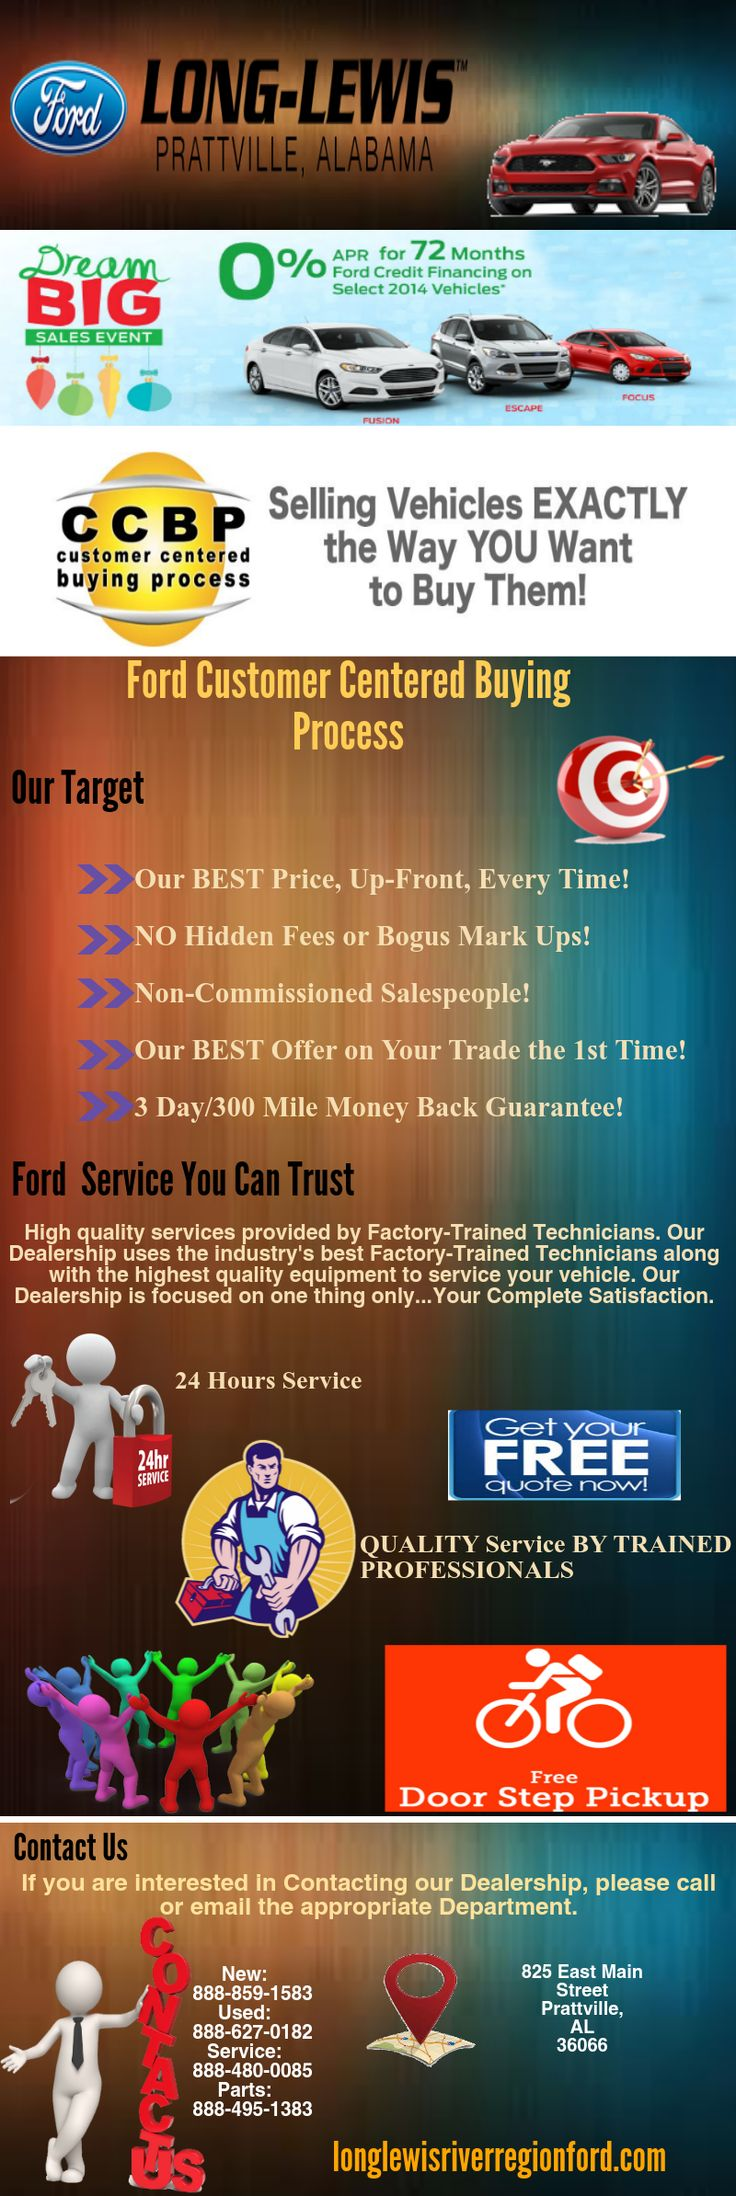 Longlewisriverregionford customer centered buying process